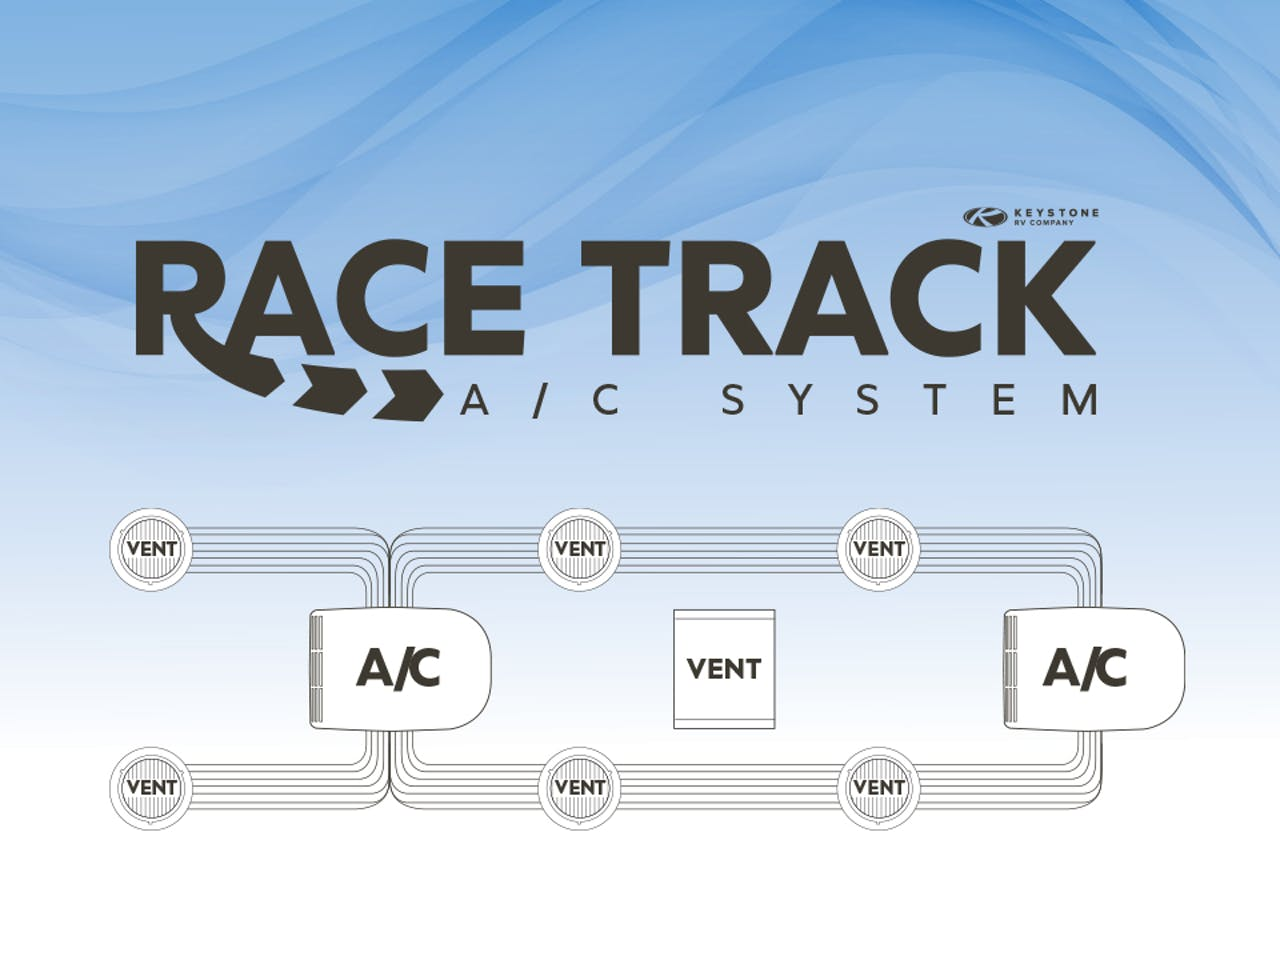 Dual-Ducted Race Track A/C System